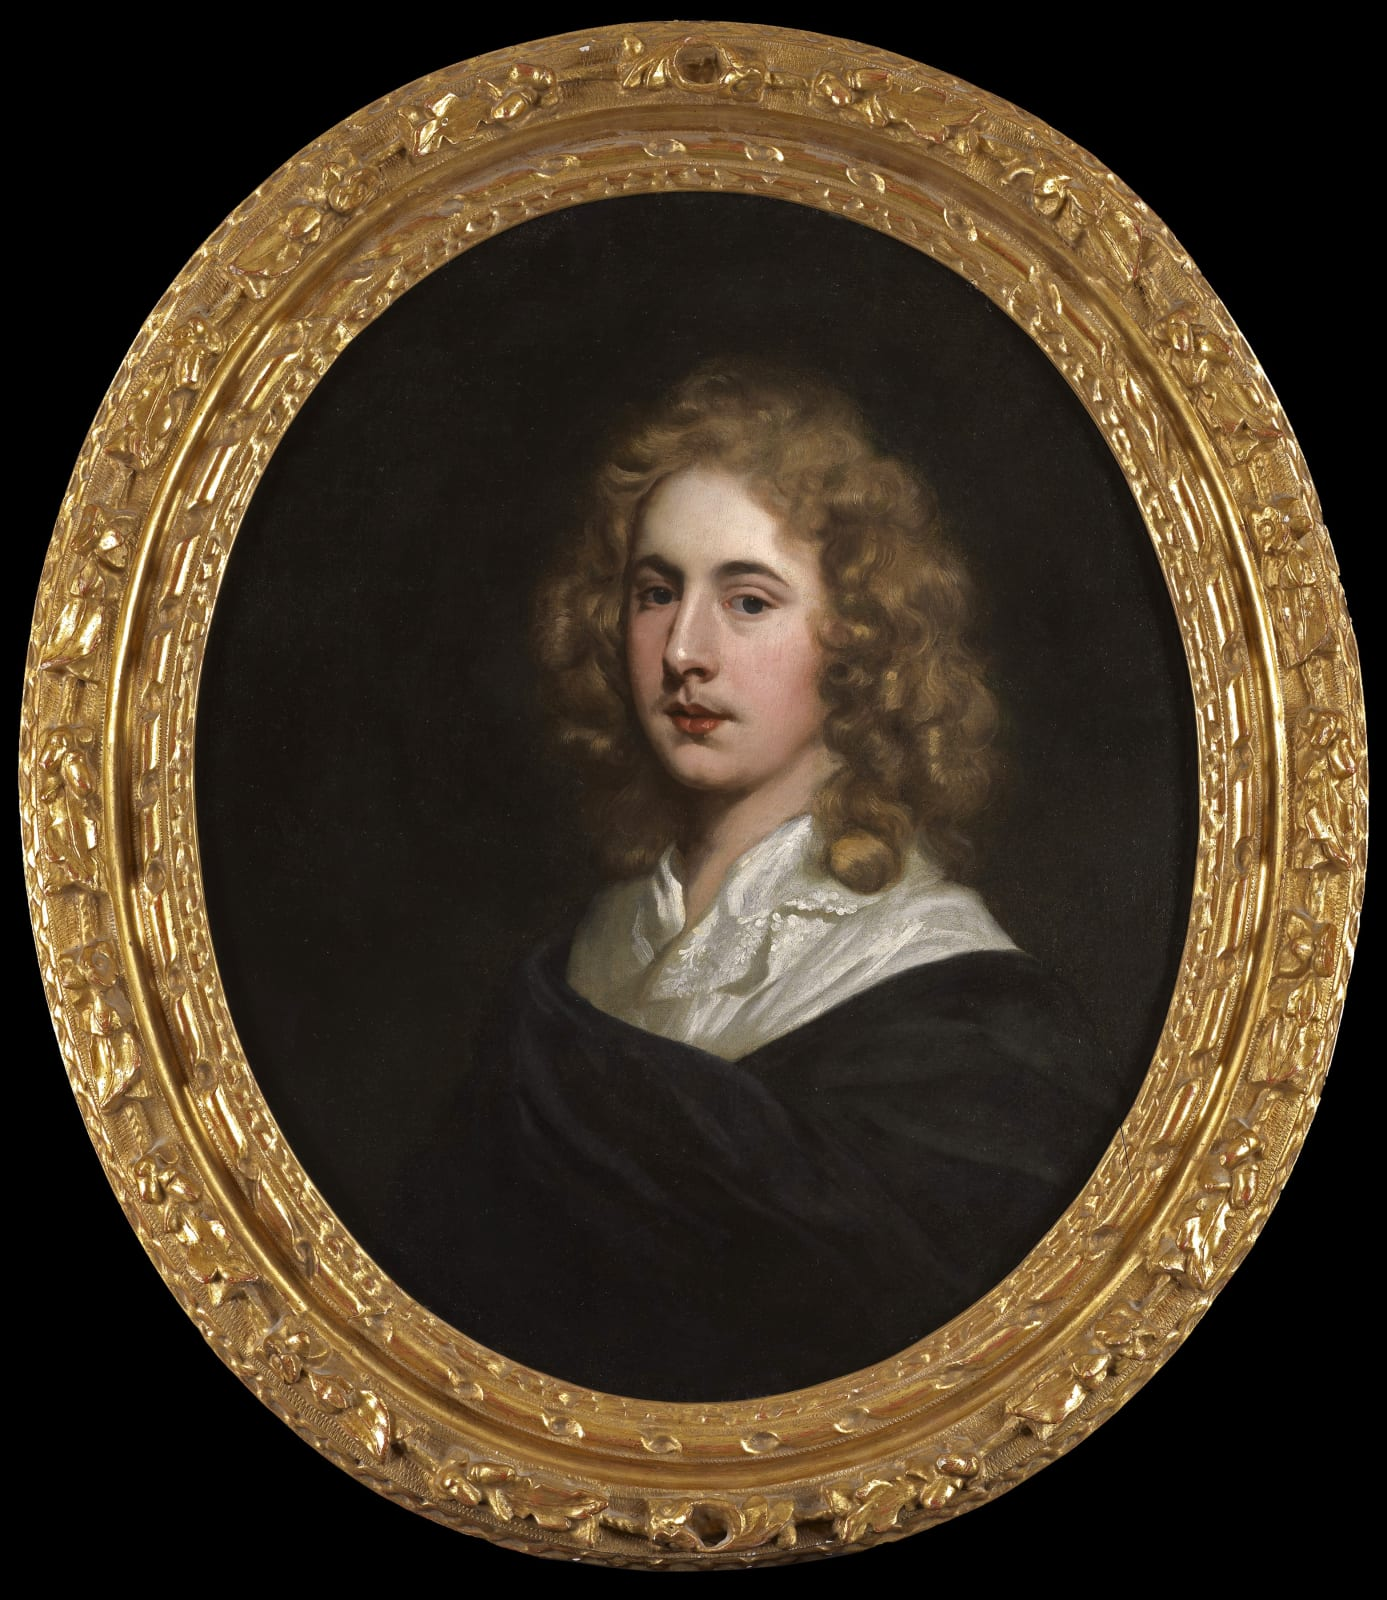 Studio of Sir Peter Lely (1618 - 1680), An Unknown Young Man, circa 1660s